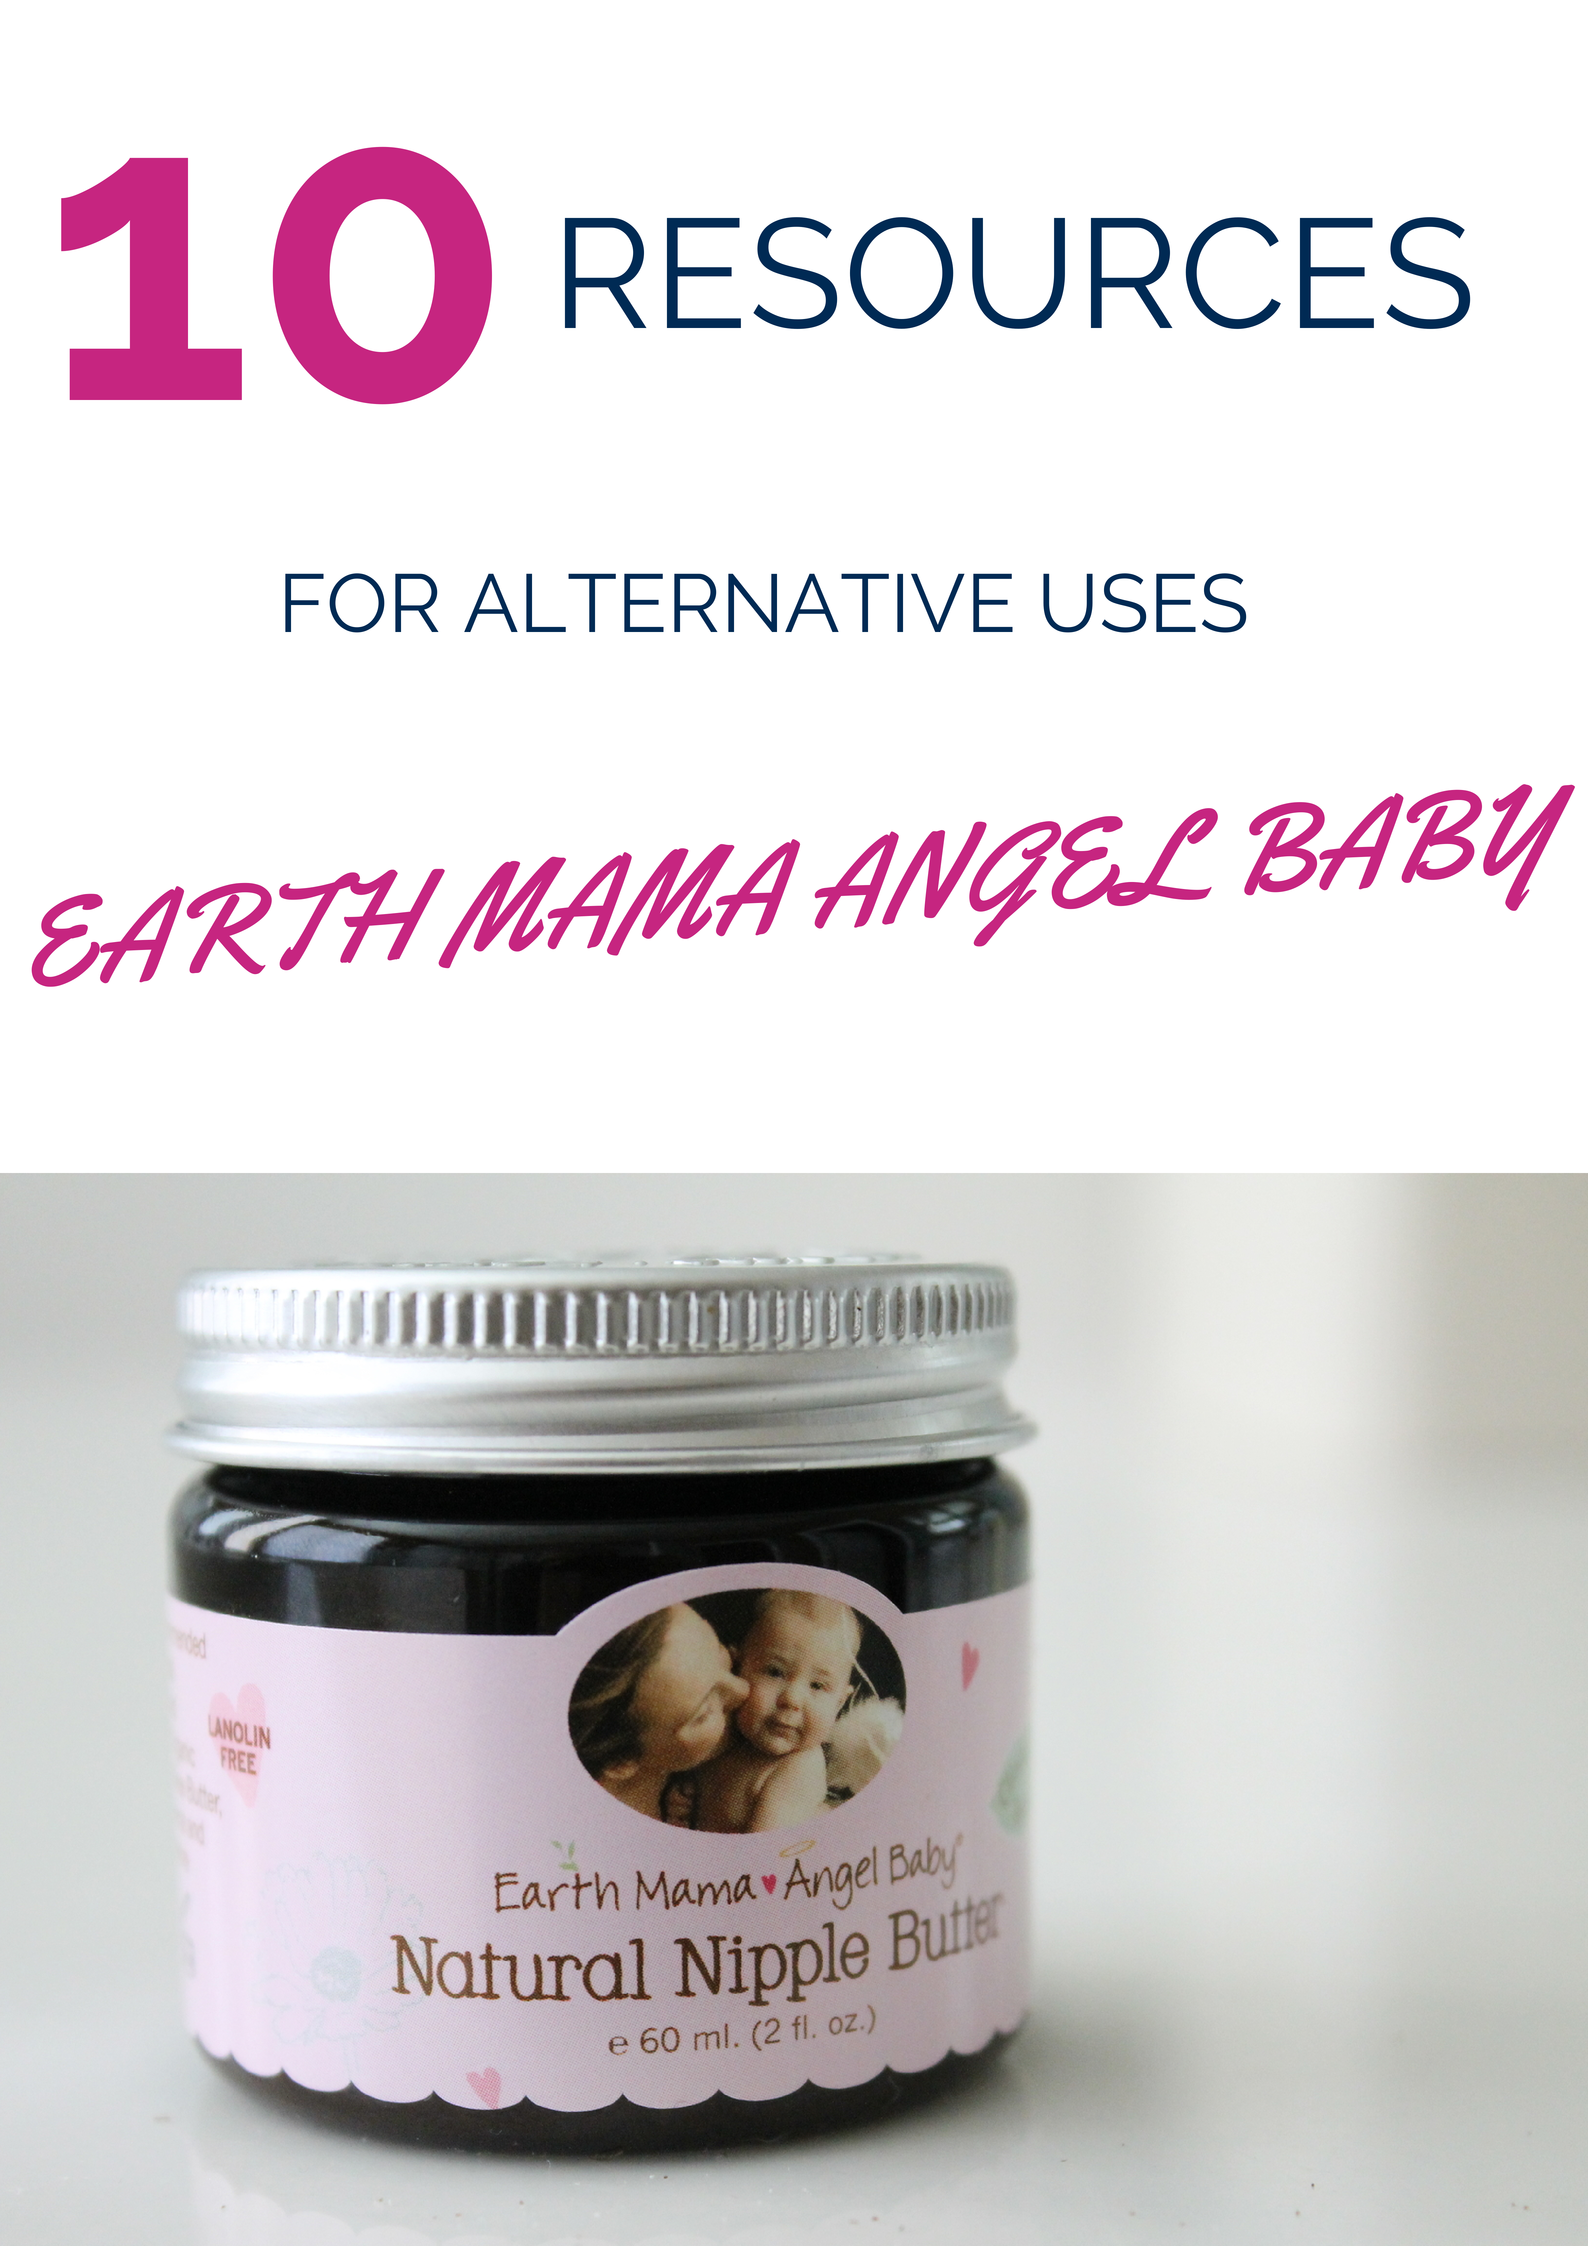 10 Resources alternative uses Earth Mama Angel Baby via www.sarahkayhoffman.com